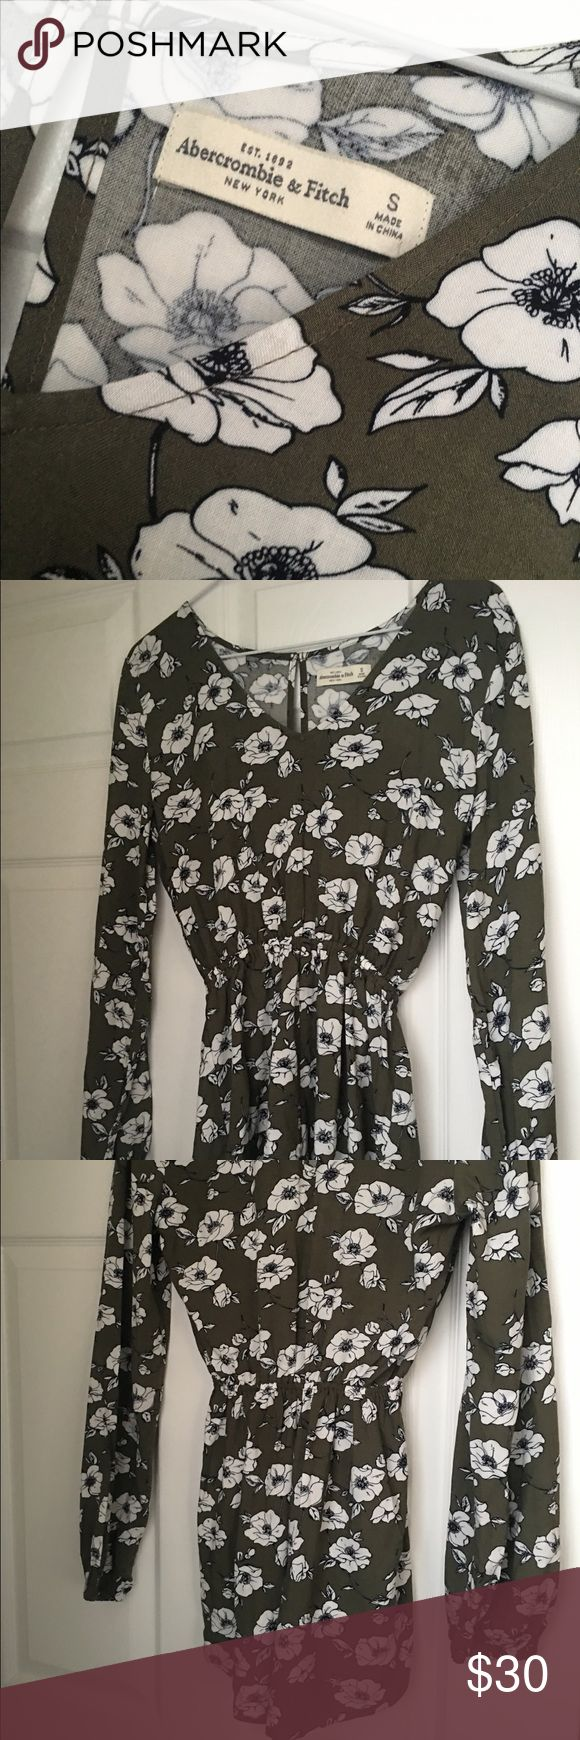 Abercrombie and Fitch romper Super cute olive green abercrombie and Fitch romper with floral patterns. Never worn. New with tags! Buttons in the back at neck to close! Lightweight and adorable :) Abercrombie & Fitch Dresses Midi